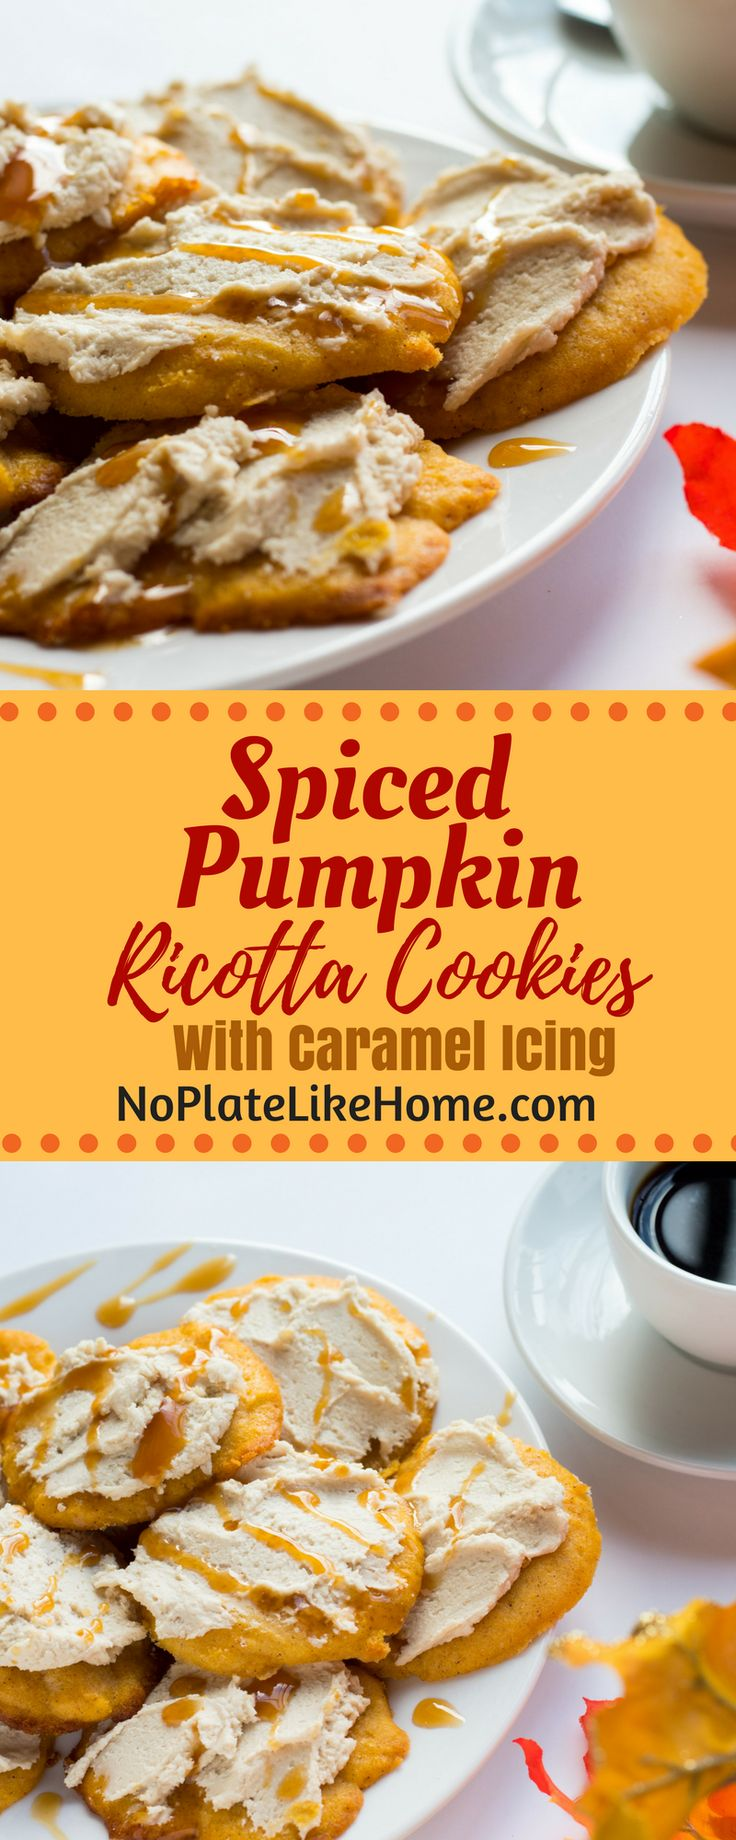 Spiced Pumpkin Ricotta Cookies with Caramel Icing are easy-to-make, moist, and flavorful ricotta cookies that taste great with coffee. A perfect Fall, Halloween or Thanksgiving dessert. Celebrate Pumpkin season! Pin for later. #yummy #delicious #foodie